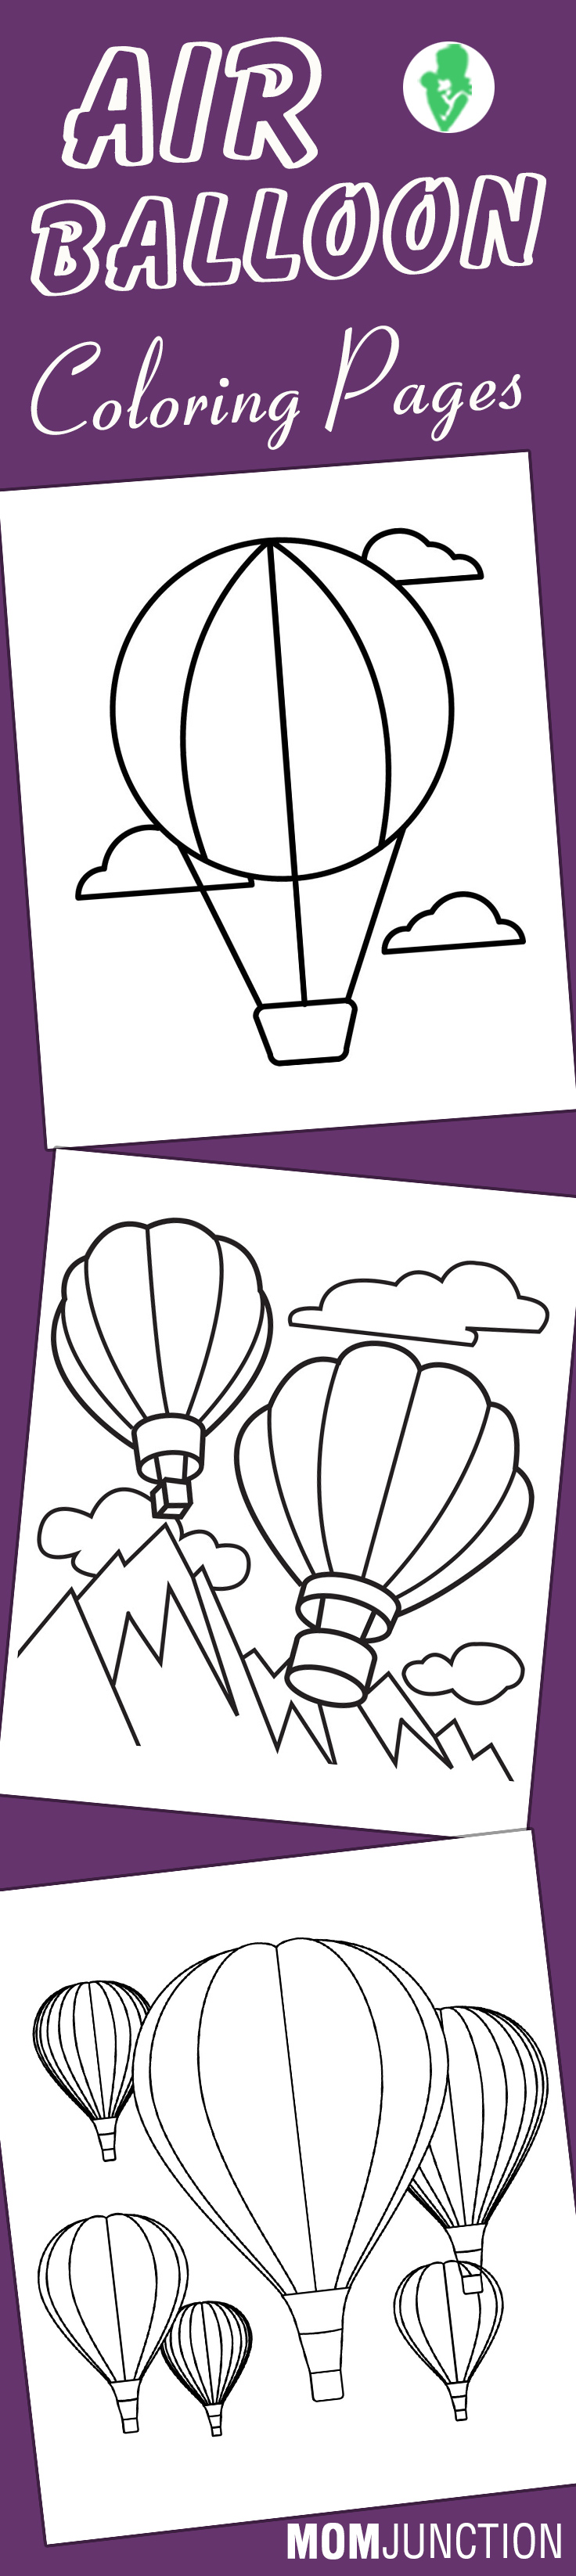 Free printable coloring pages hot air balloon - Free Printable Coloring Pages Hot Air Balloon 28